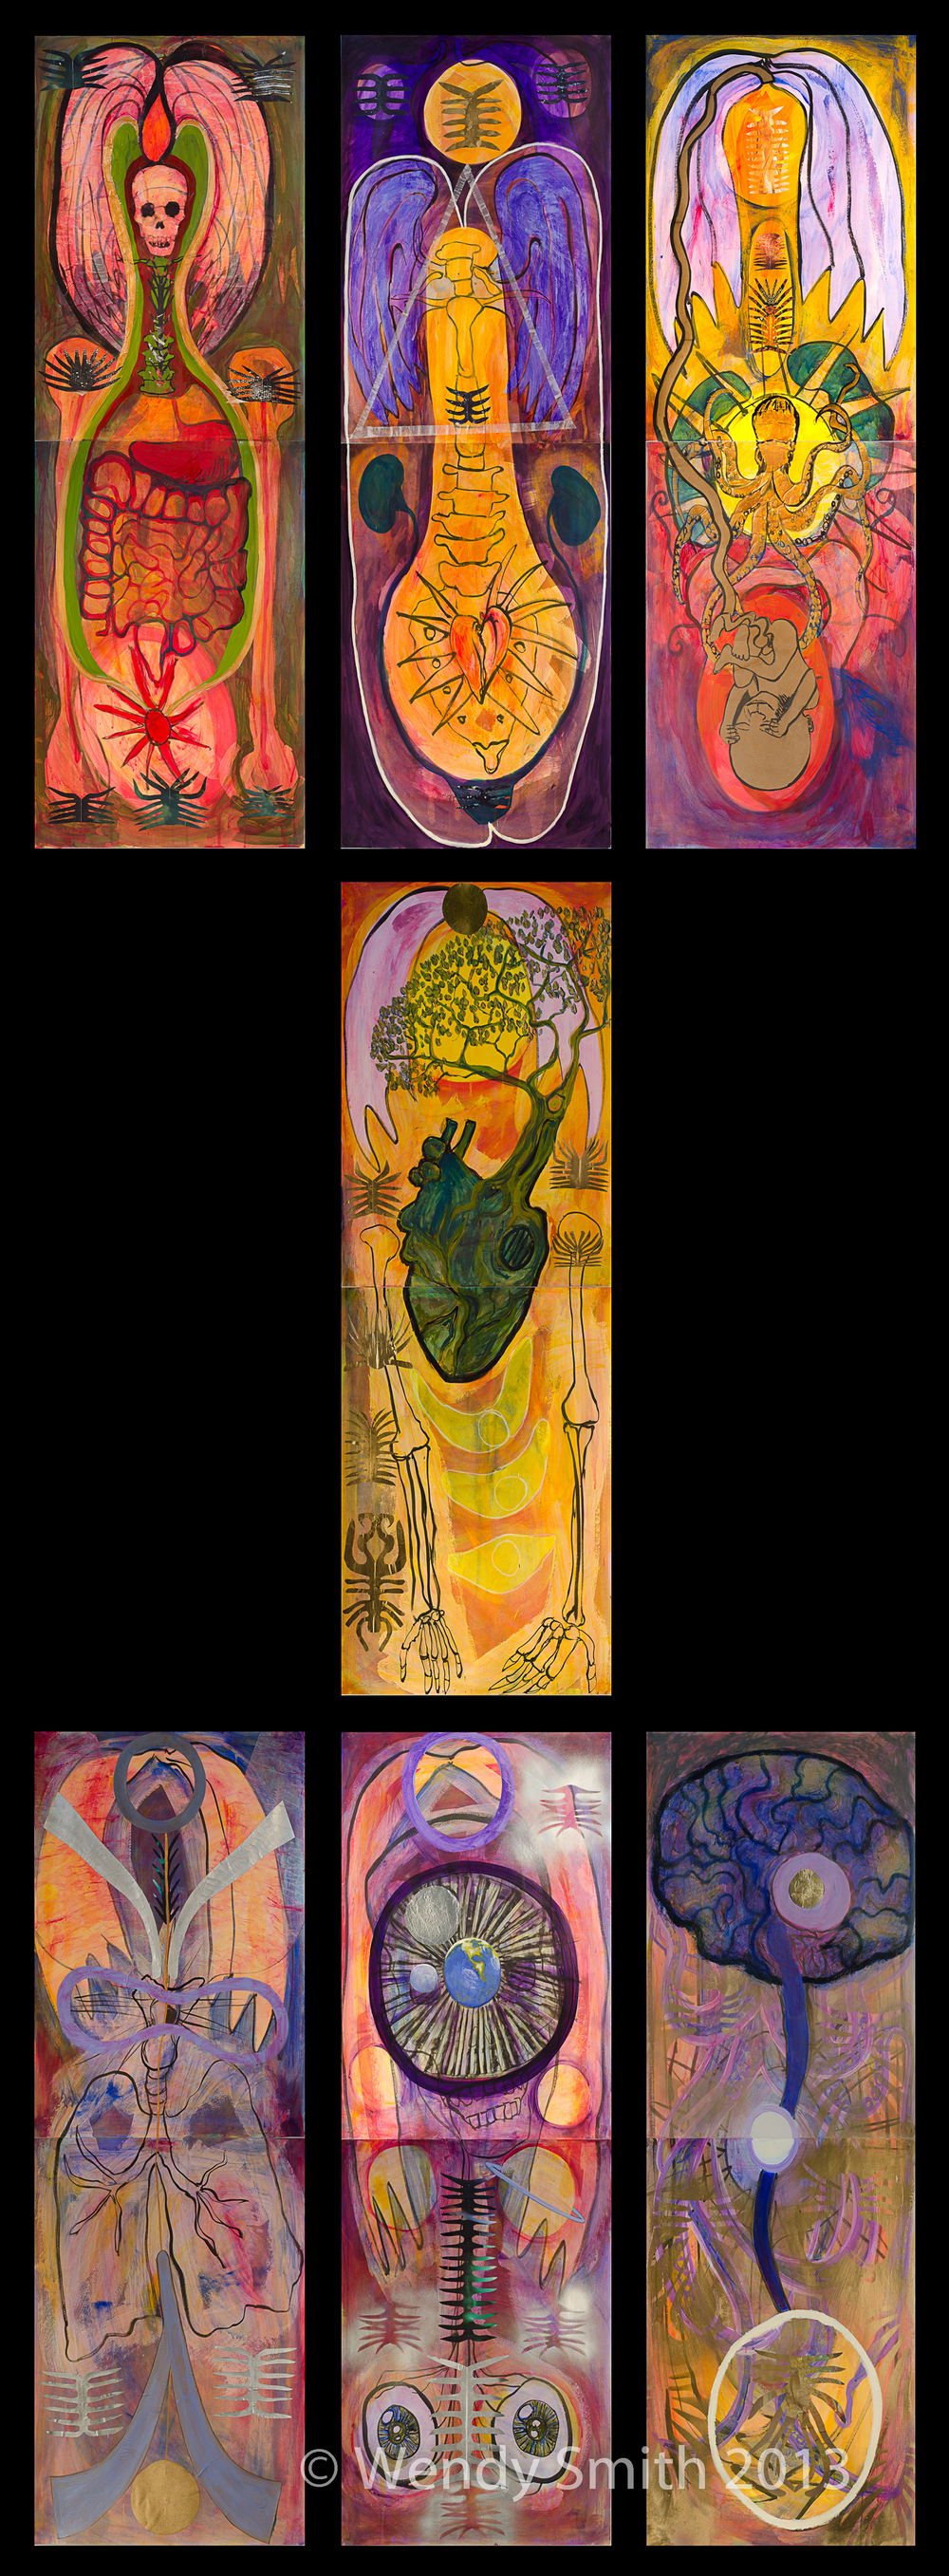 "1st Chakra, 2nd Chakra, 3rd Chakra, 4th Chakra, 5th Chakra, 6th Chakra, 7th Chakra Each Diptych - 22"" x 60"" - Acrylic, ink, collage, metallic paint"